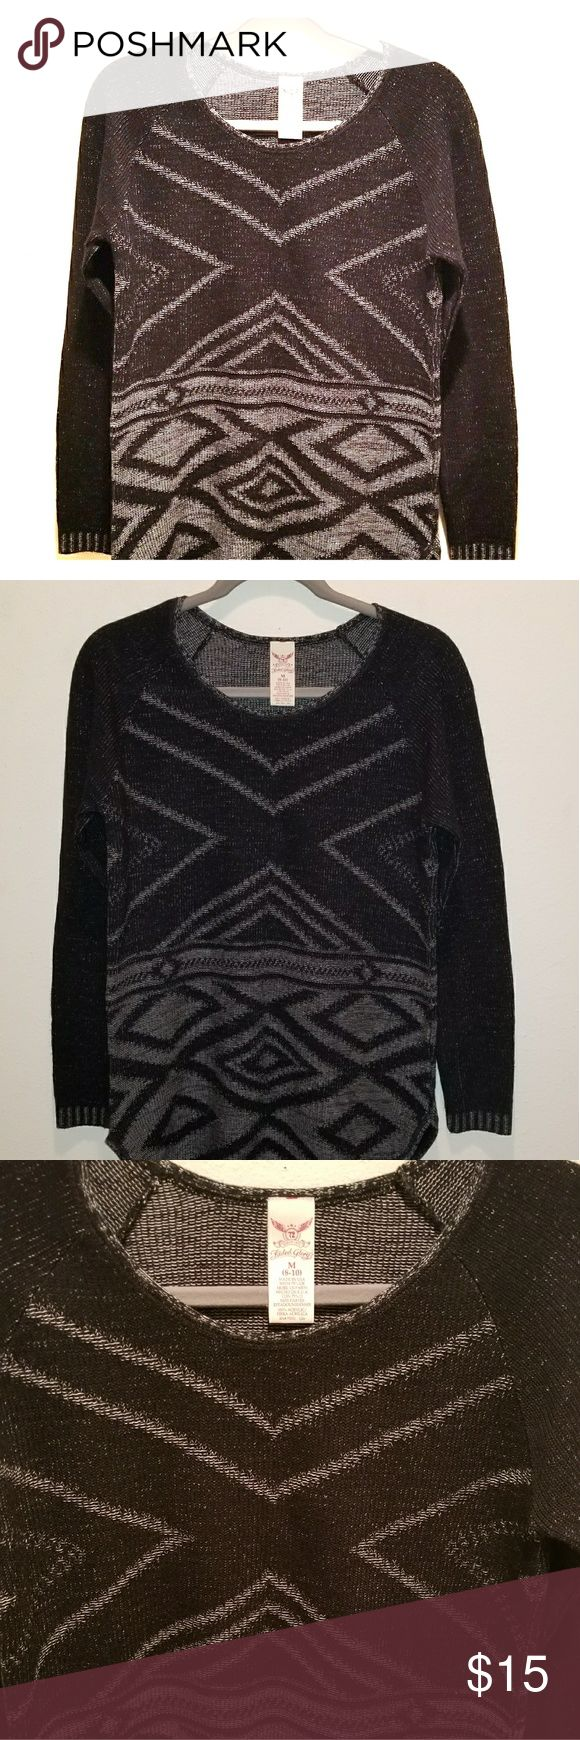 Black & Grey Aztec Tribal Print Sweater Trendy pull over sweater. Excellent condition. Faded Glory Sweaters Crew & Scoop Necks